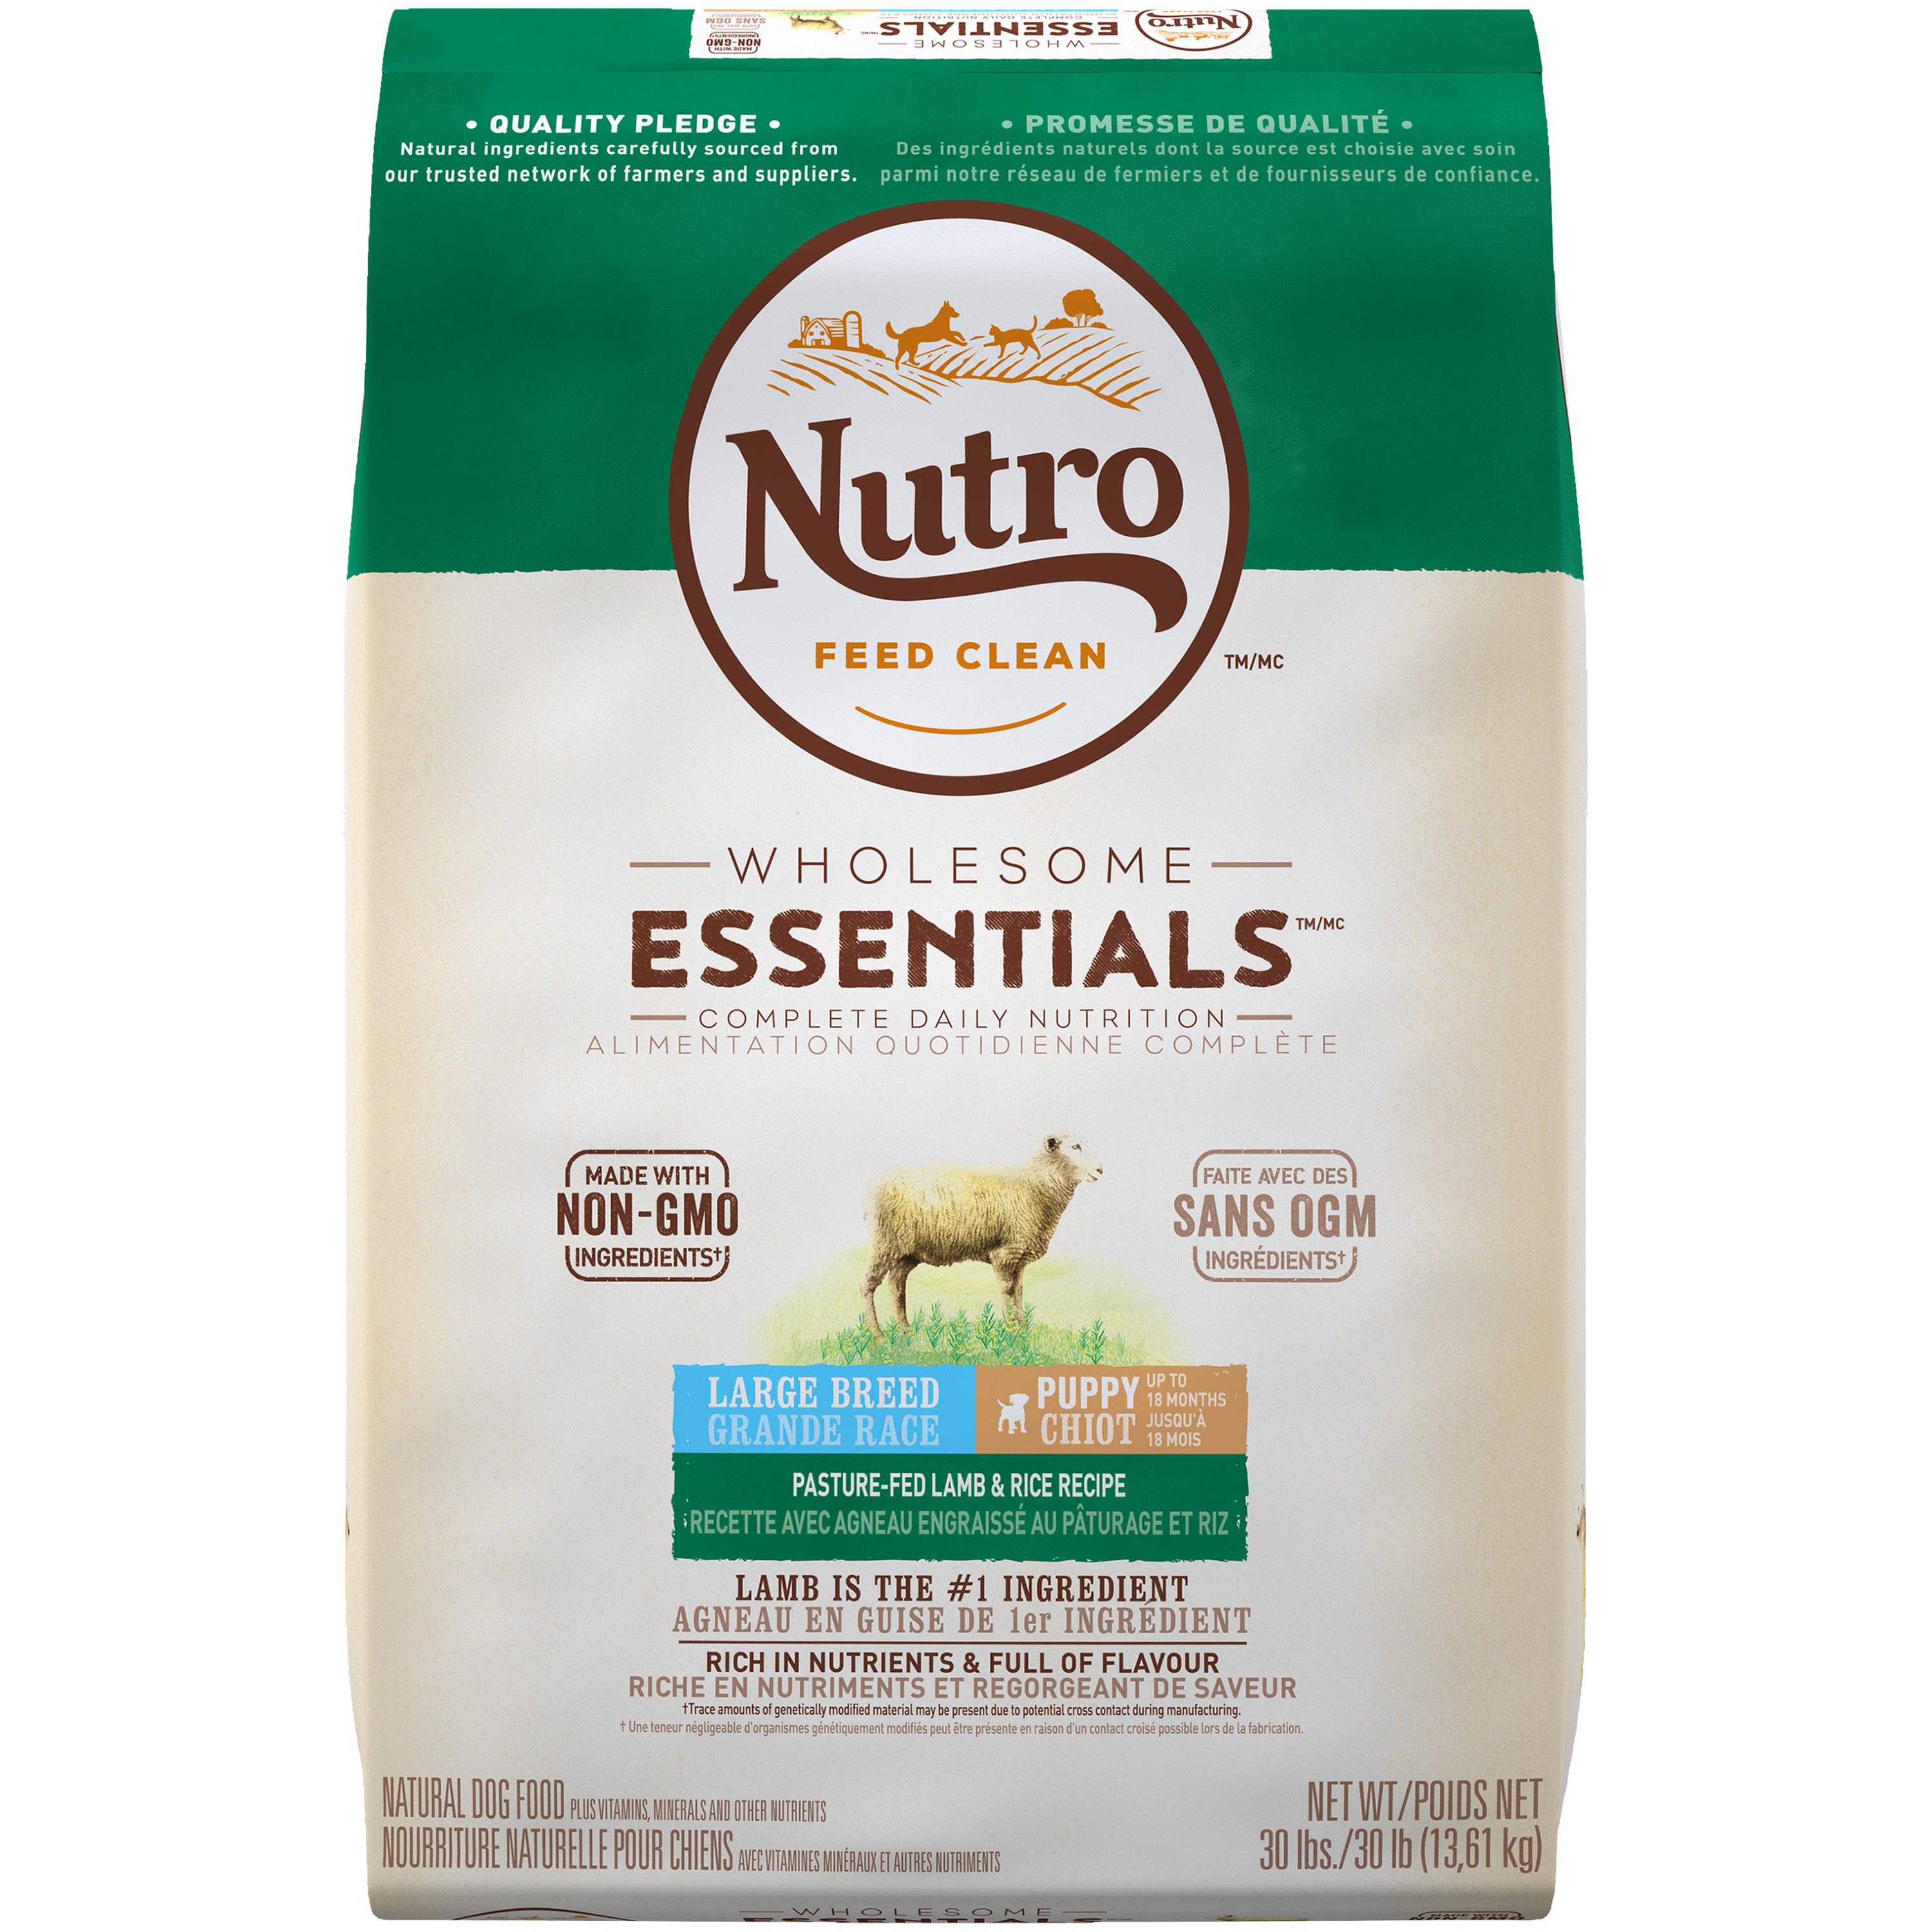 Nutro Wholesome Essentials Large Breed Puppy Dry Dog Food - Lamb & Rice, 30 lbs